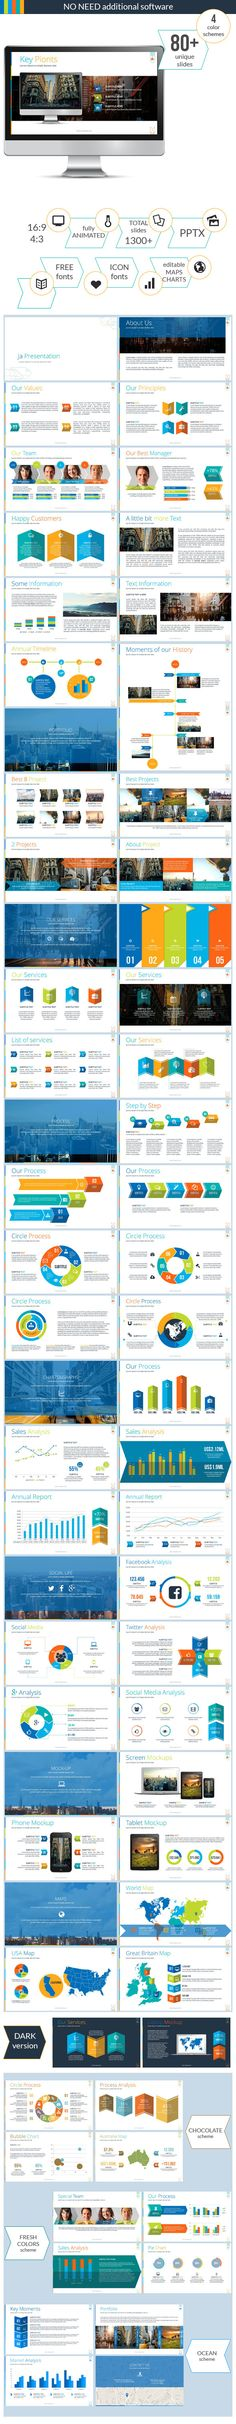 791 best powerpoint templates images on pinterest design templates